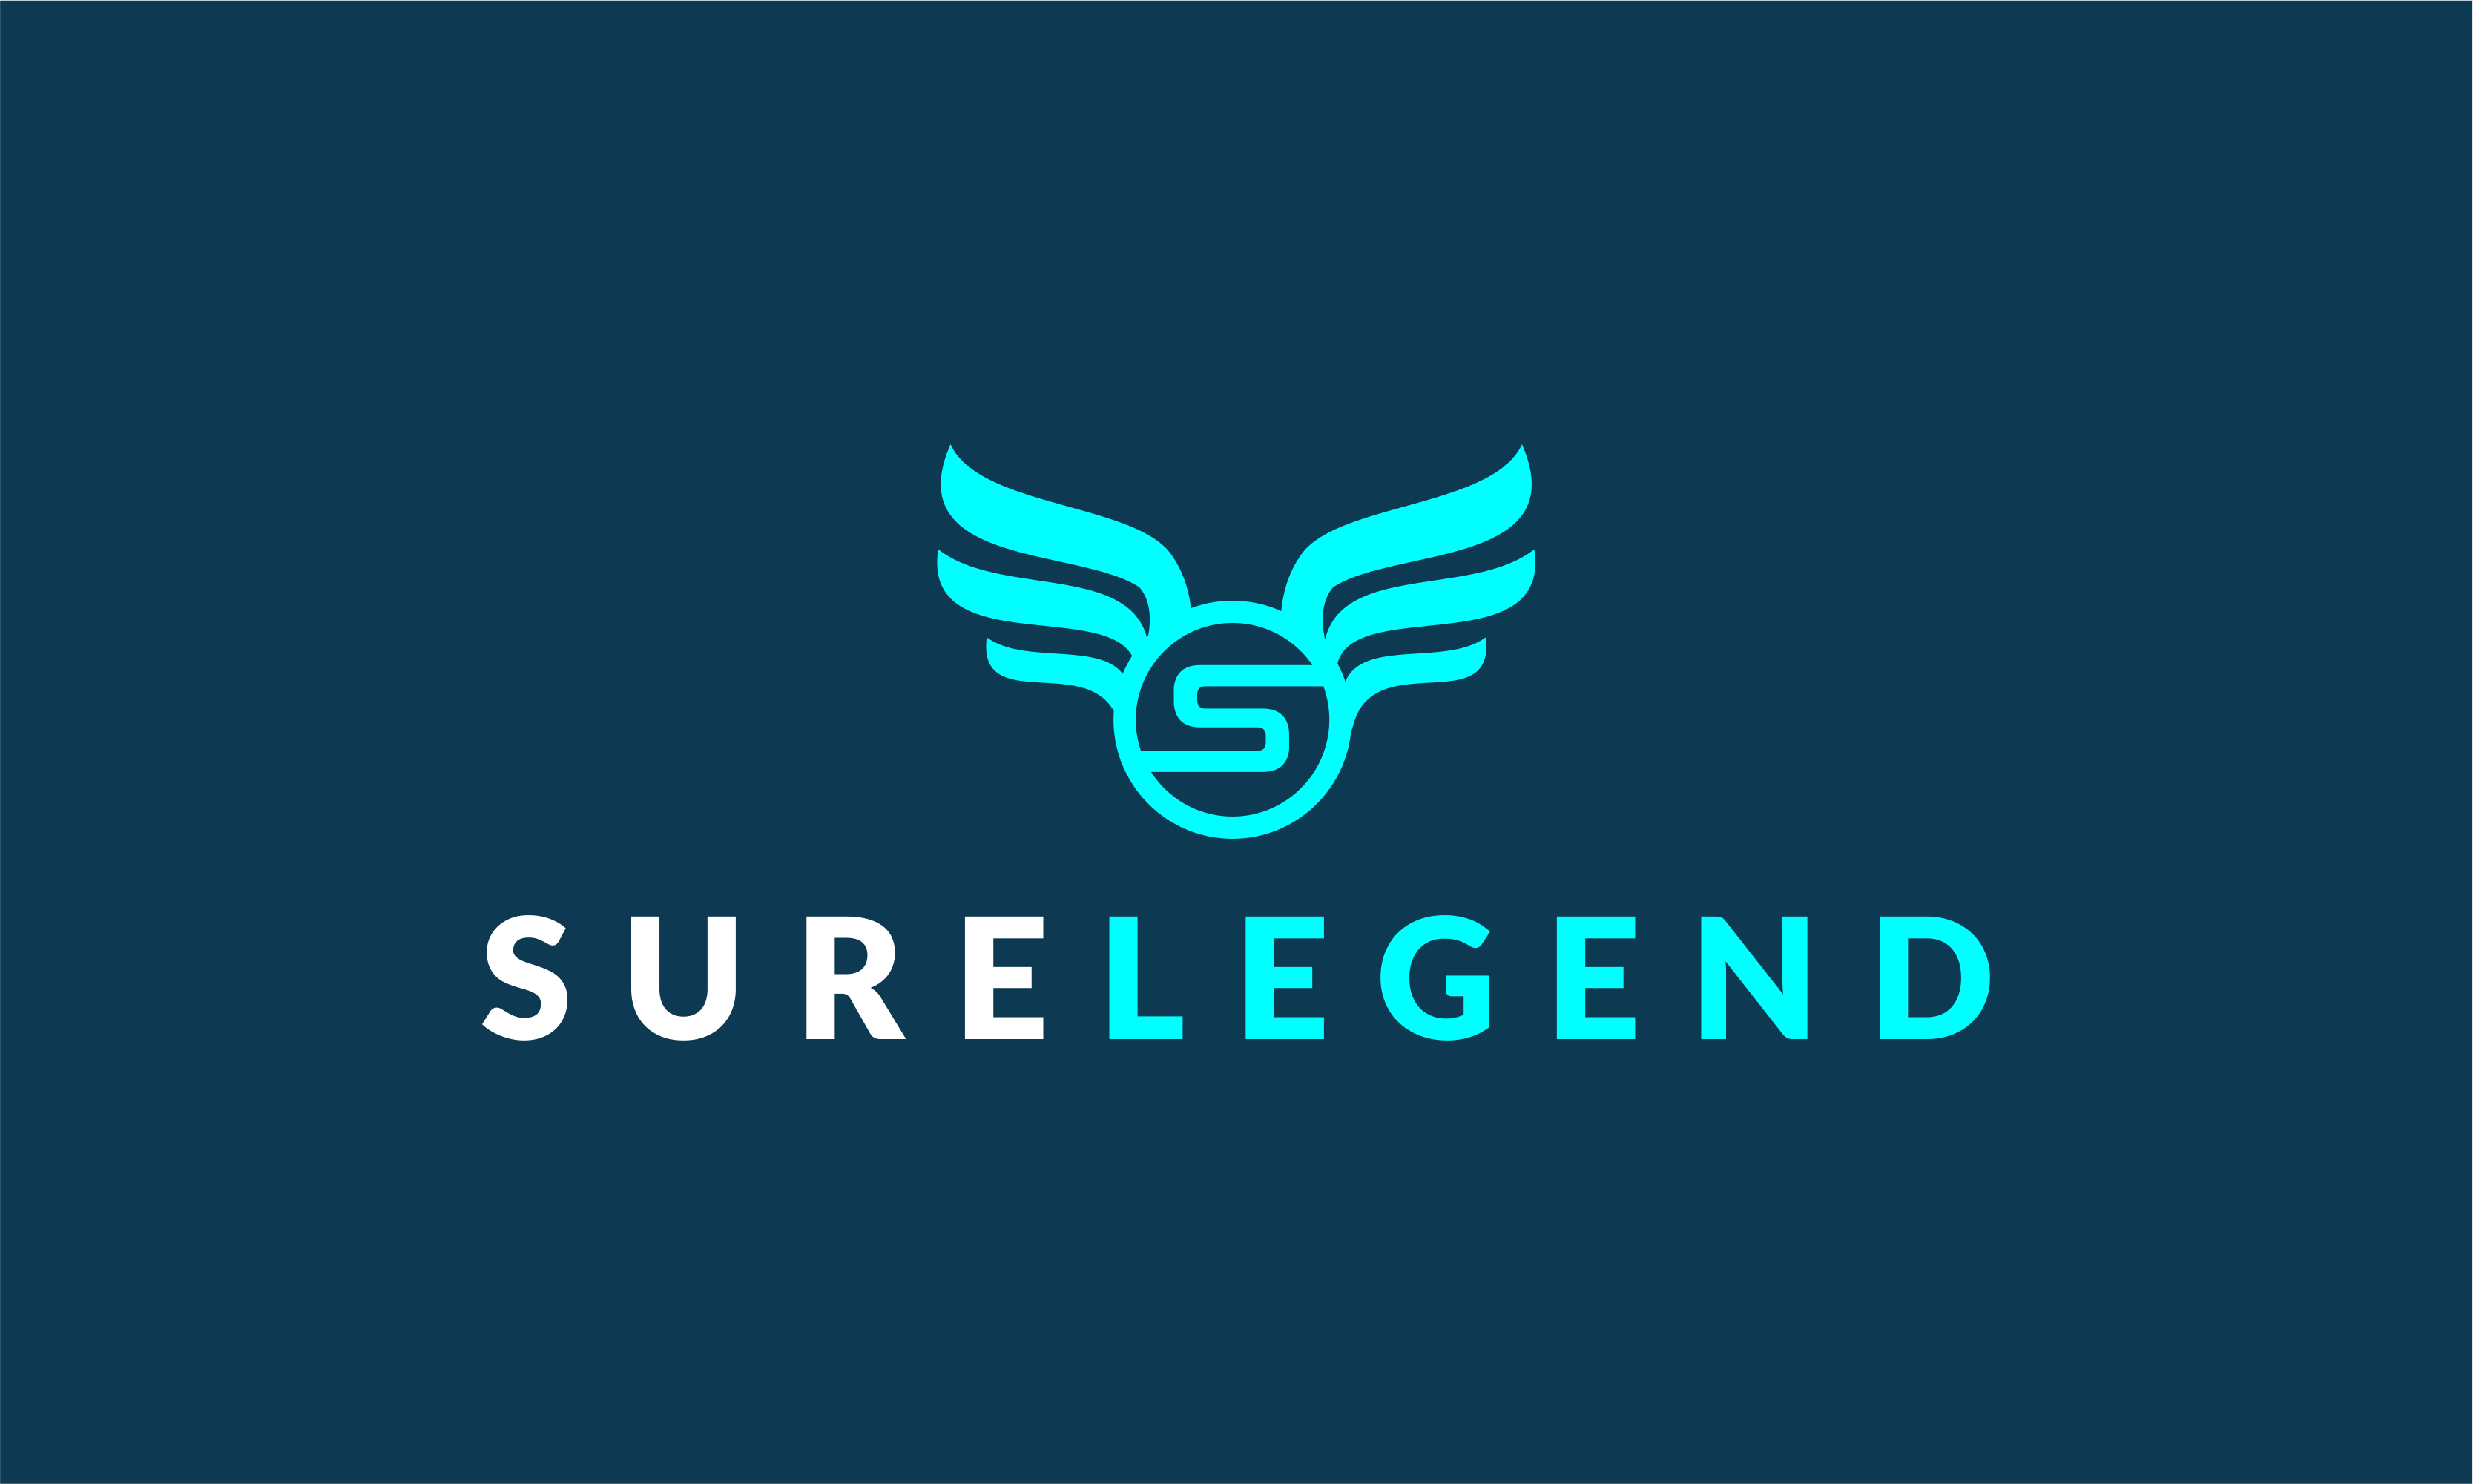 Surelegend